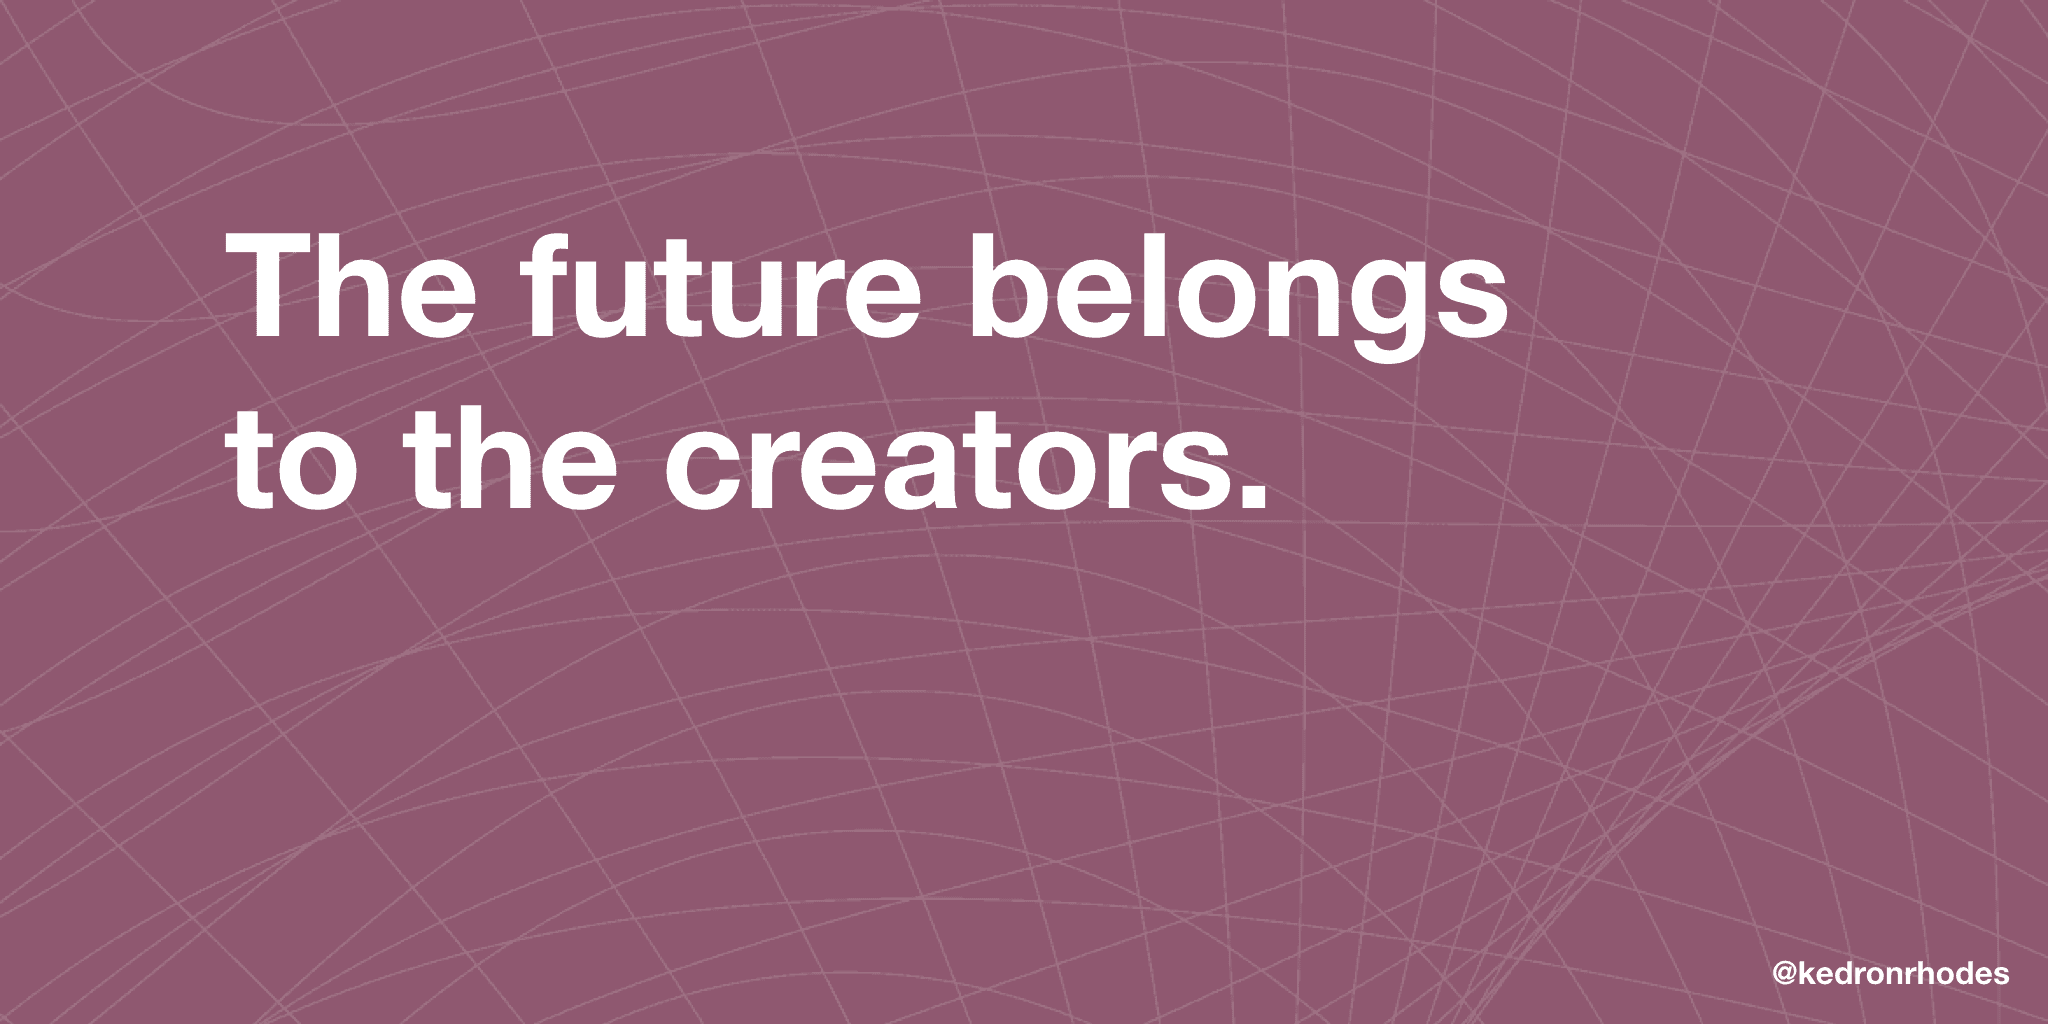 The future belongs to the creators.